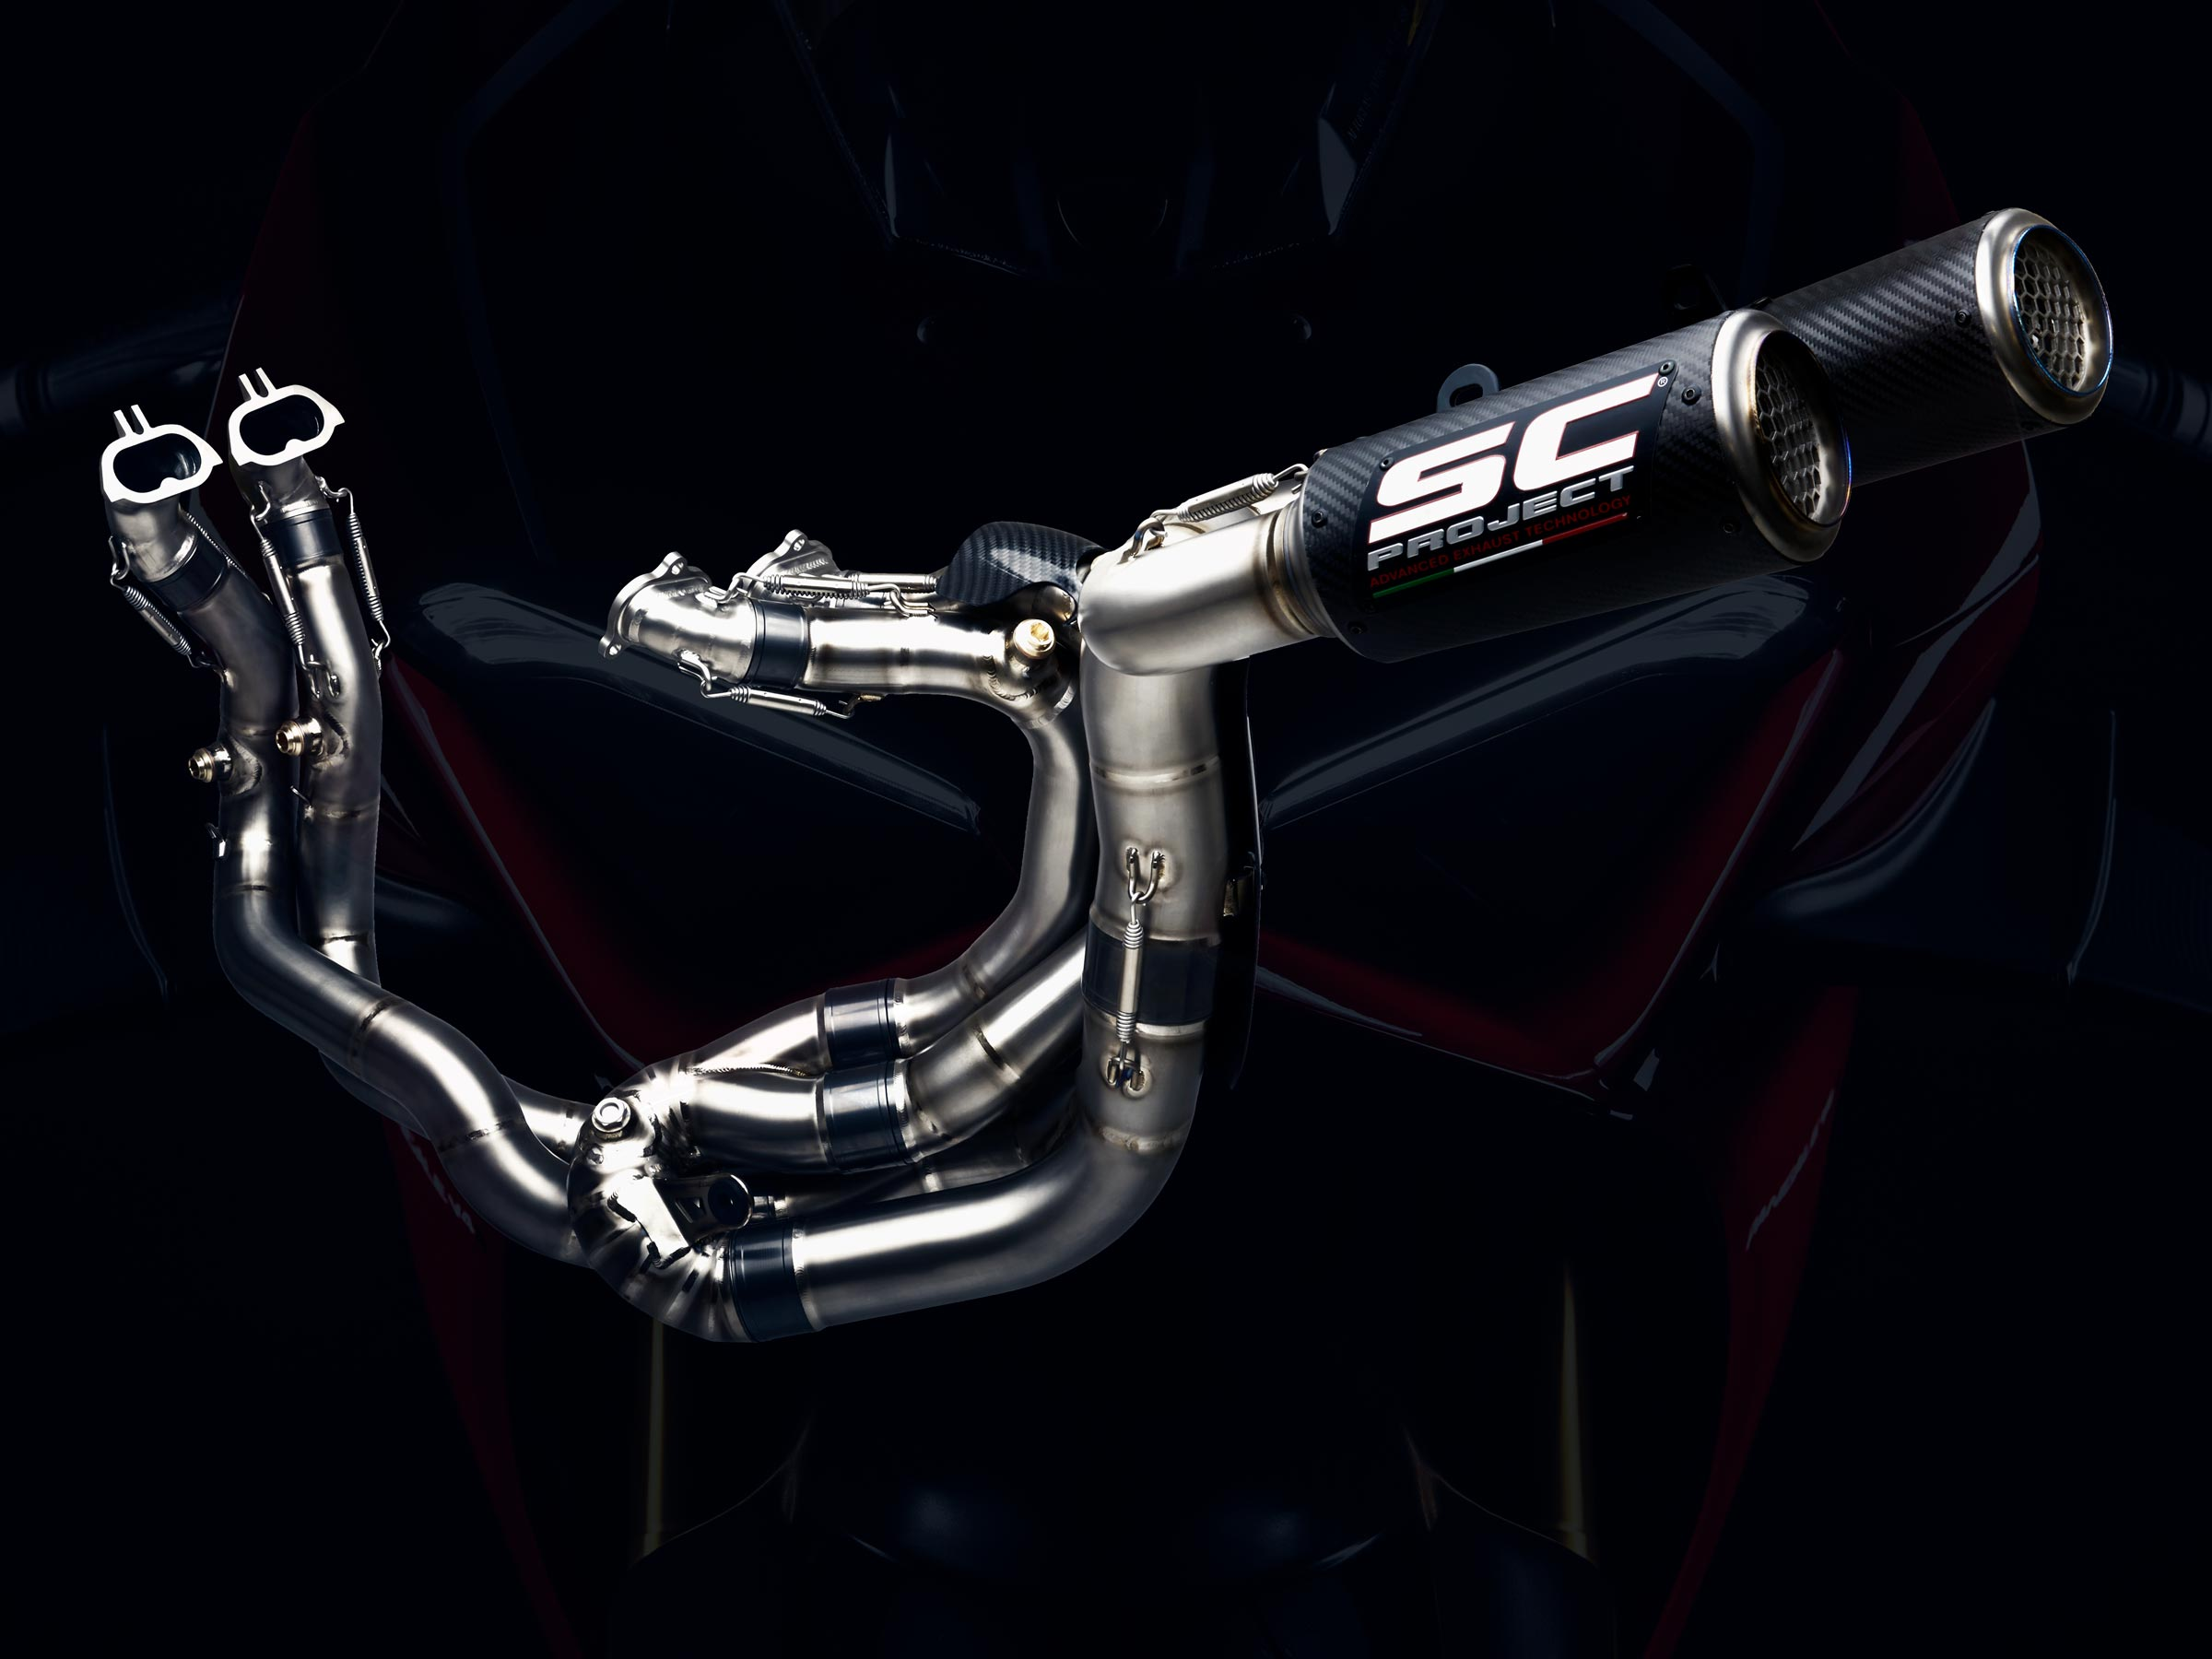 Ducati Panigale V4 SC-Project WSBK full exhaust system web background